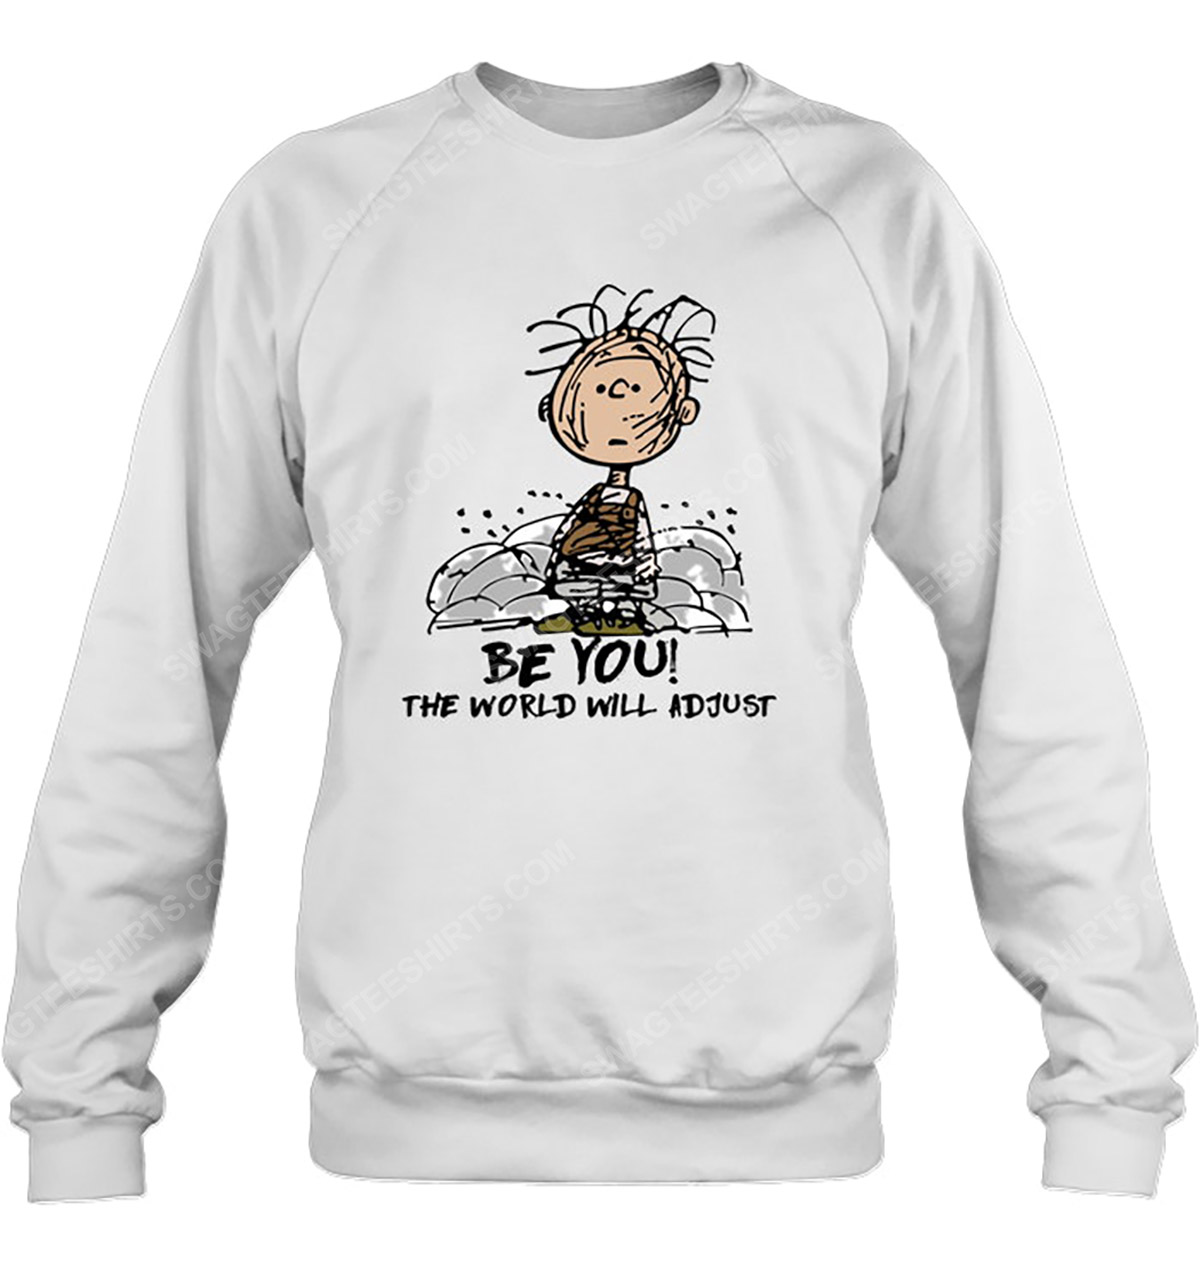 The peanuts charlie brown be you the world will adjust sweatshirt 1